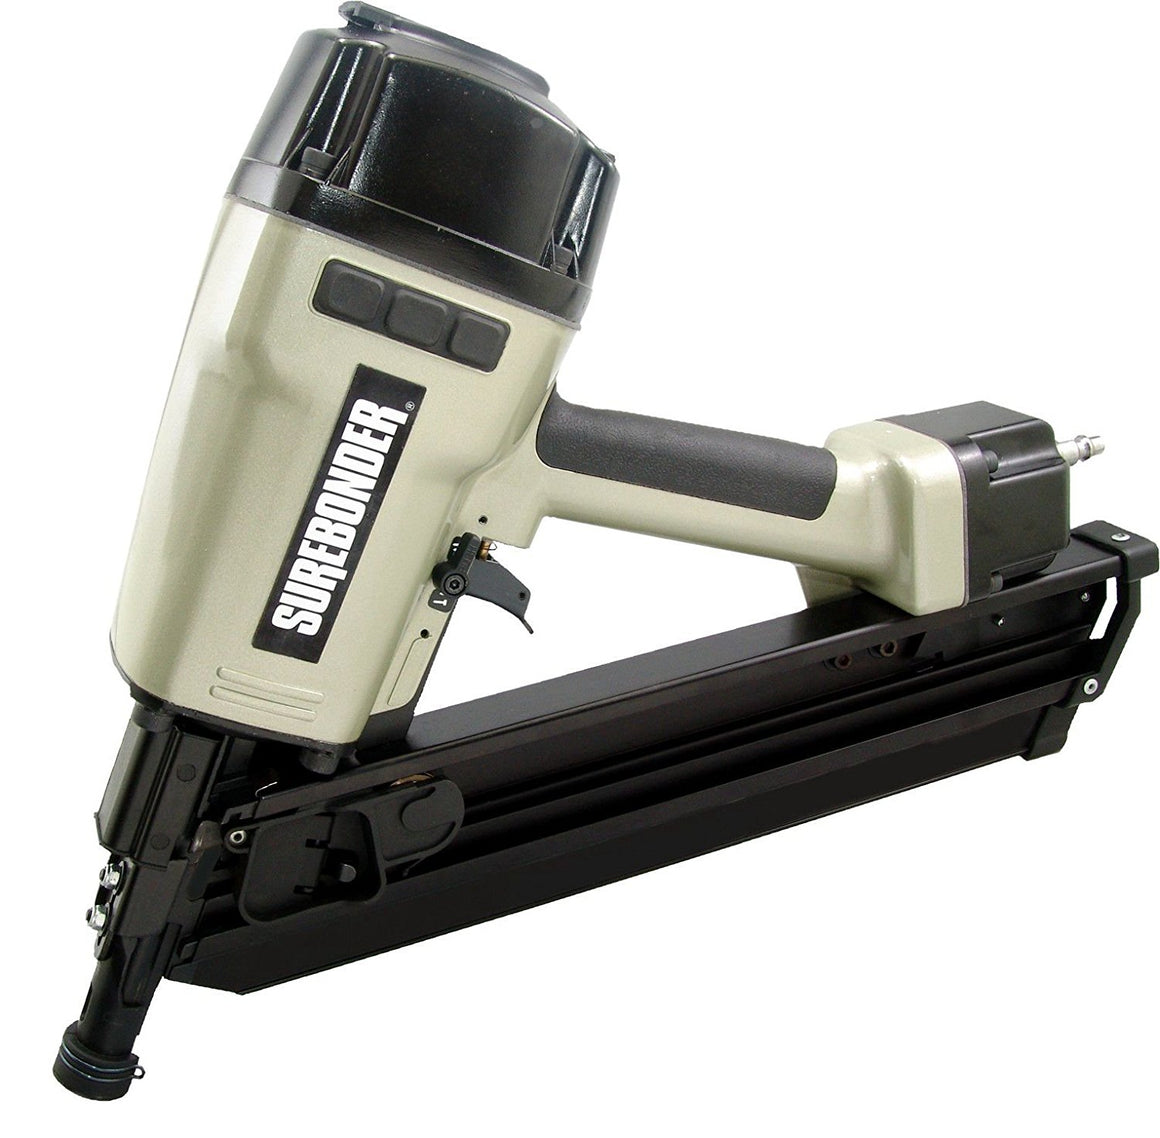 30-34 Degree Clipped Head Framing Nailer - Surebonder